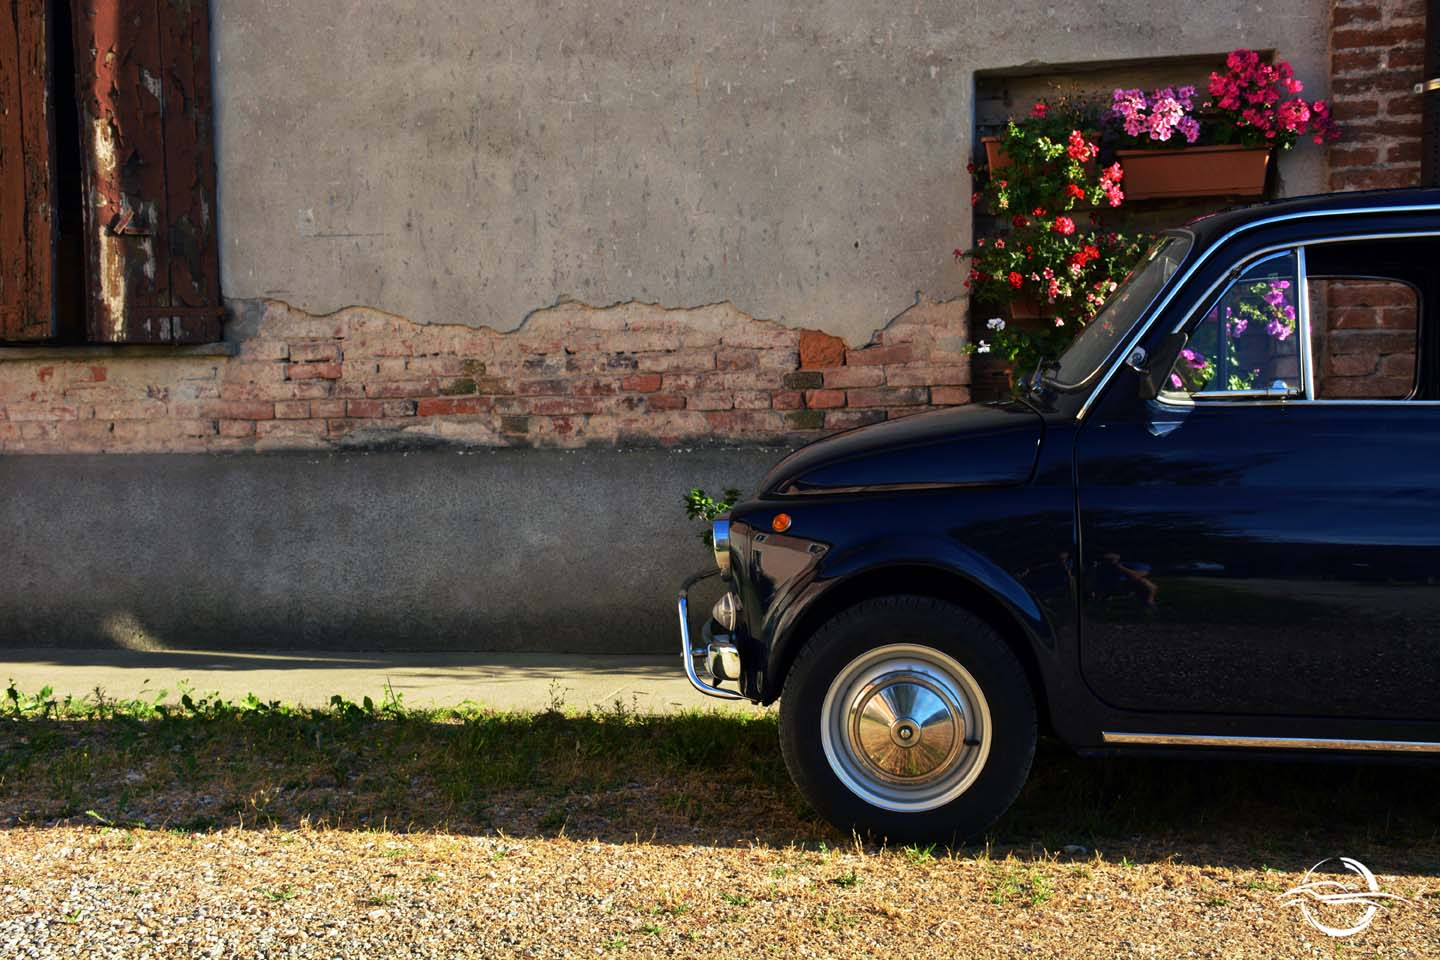 Fiat 500 Waiting For The Summer International Classic 1957 Sale Which Im Driving Now Is L Version Stands Lusso Or Luxurious It Blue With A Red Interior Its Fully Original And